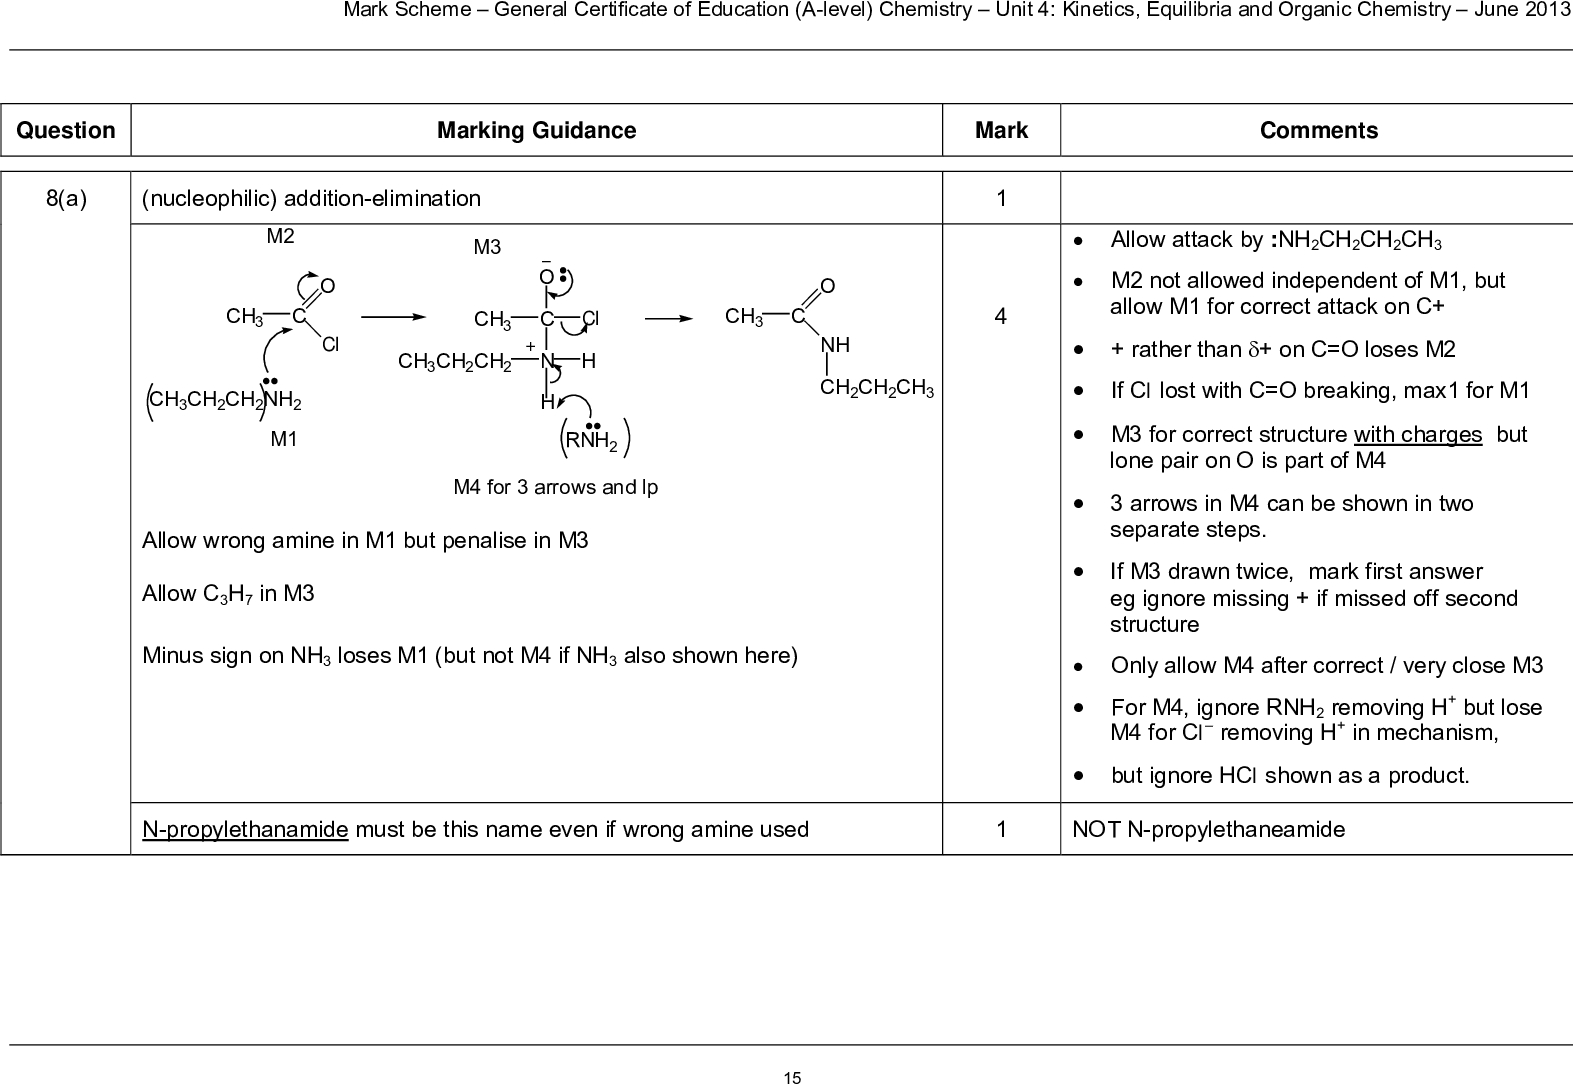 question mark scheme general certificate of education a level chemistry unit kinetics equilibria and organic chemistry june marking guidance mark comments a nucleophilic addition elimination m ch c cl ch ch ch nh m m o ch c n h ch ch ch cl rnh ch c nh ch ch ch m for arrows and lp allow wrong amine in m but penalise in m allow c h in m minus sign on nh loses m but not m if nh also shown here allow attack by nh ch ch ch m not allowed independent of m but allow m for correct attack on c rather than on c o loses m if cl lost with c o breaking max for m m for correct structure with charges but lone pair on o is part of m arrows in m can be shown in two separate steps if m drawn twice mark first answer eg ignore missing if missed off second structure only allow m after correct very close m for m ignore rnh removing h but lose m for cl removing h in mechanism but ignore hcl shown as a product n propylethanamide must be this name even if wrong amine used not n propylethaneamide mark scheme general certificate of education a level chemistry unit kinetics equilibria and organic chemistry june b i h c ch ch primary nh not allow ambiguous c h nh beware no mark for the original amine ch ch ch nh h c n h ch ch secondary allow c h h c n ch ch tertiary b ii absorption at cm in spectrum n h bond only present in secondary amine or not present in tertiary amine or this peak or n h absorption only present in spectrum of secondary amine or not present in spectrum of tertiary amine label and structure must both be correct for each type to score the mark penalize wrong number of carbons but otherwise correct first time only allow trough peak spike ignore absorption at for c c bond in secondary this is within fingerprint region allow any number in this range if range missing no further marks if range linked to tertiary no further marks mark scheme general certificate of education a level chemistry unit kinetics equilibria and organic chemistry june c i m route a stage kcn m m aqueous or et